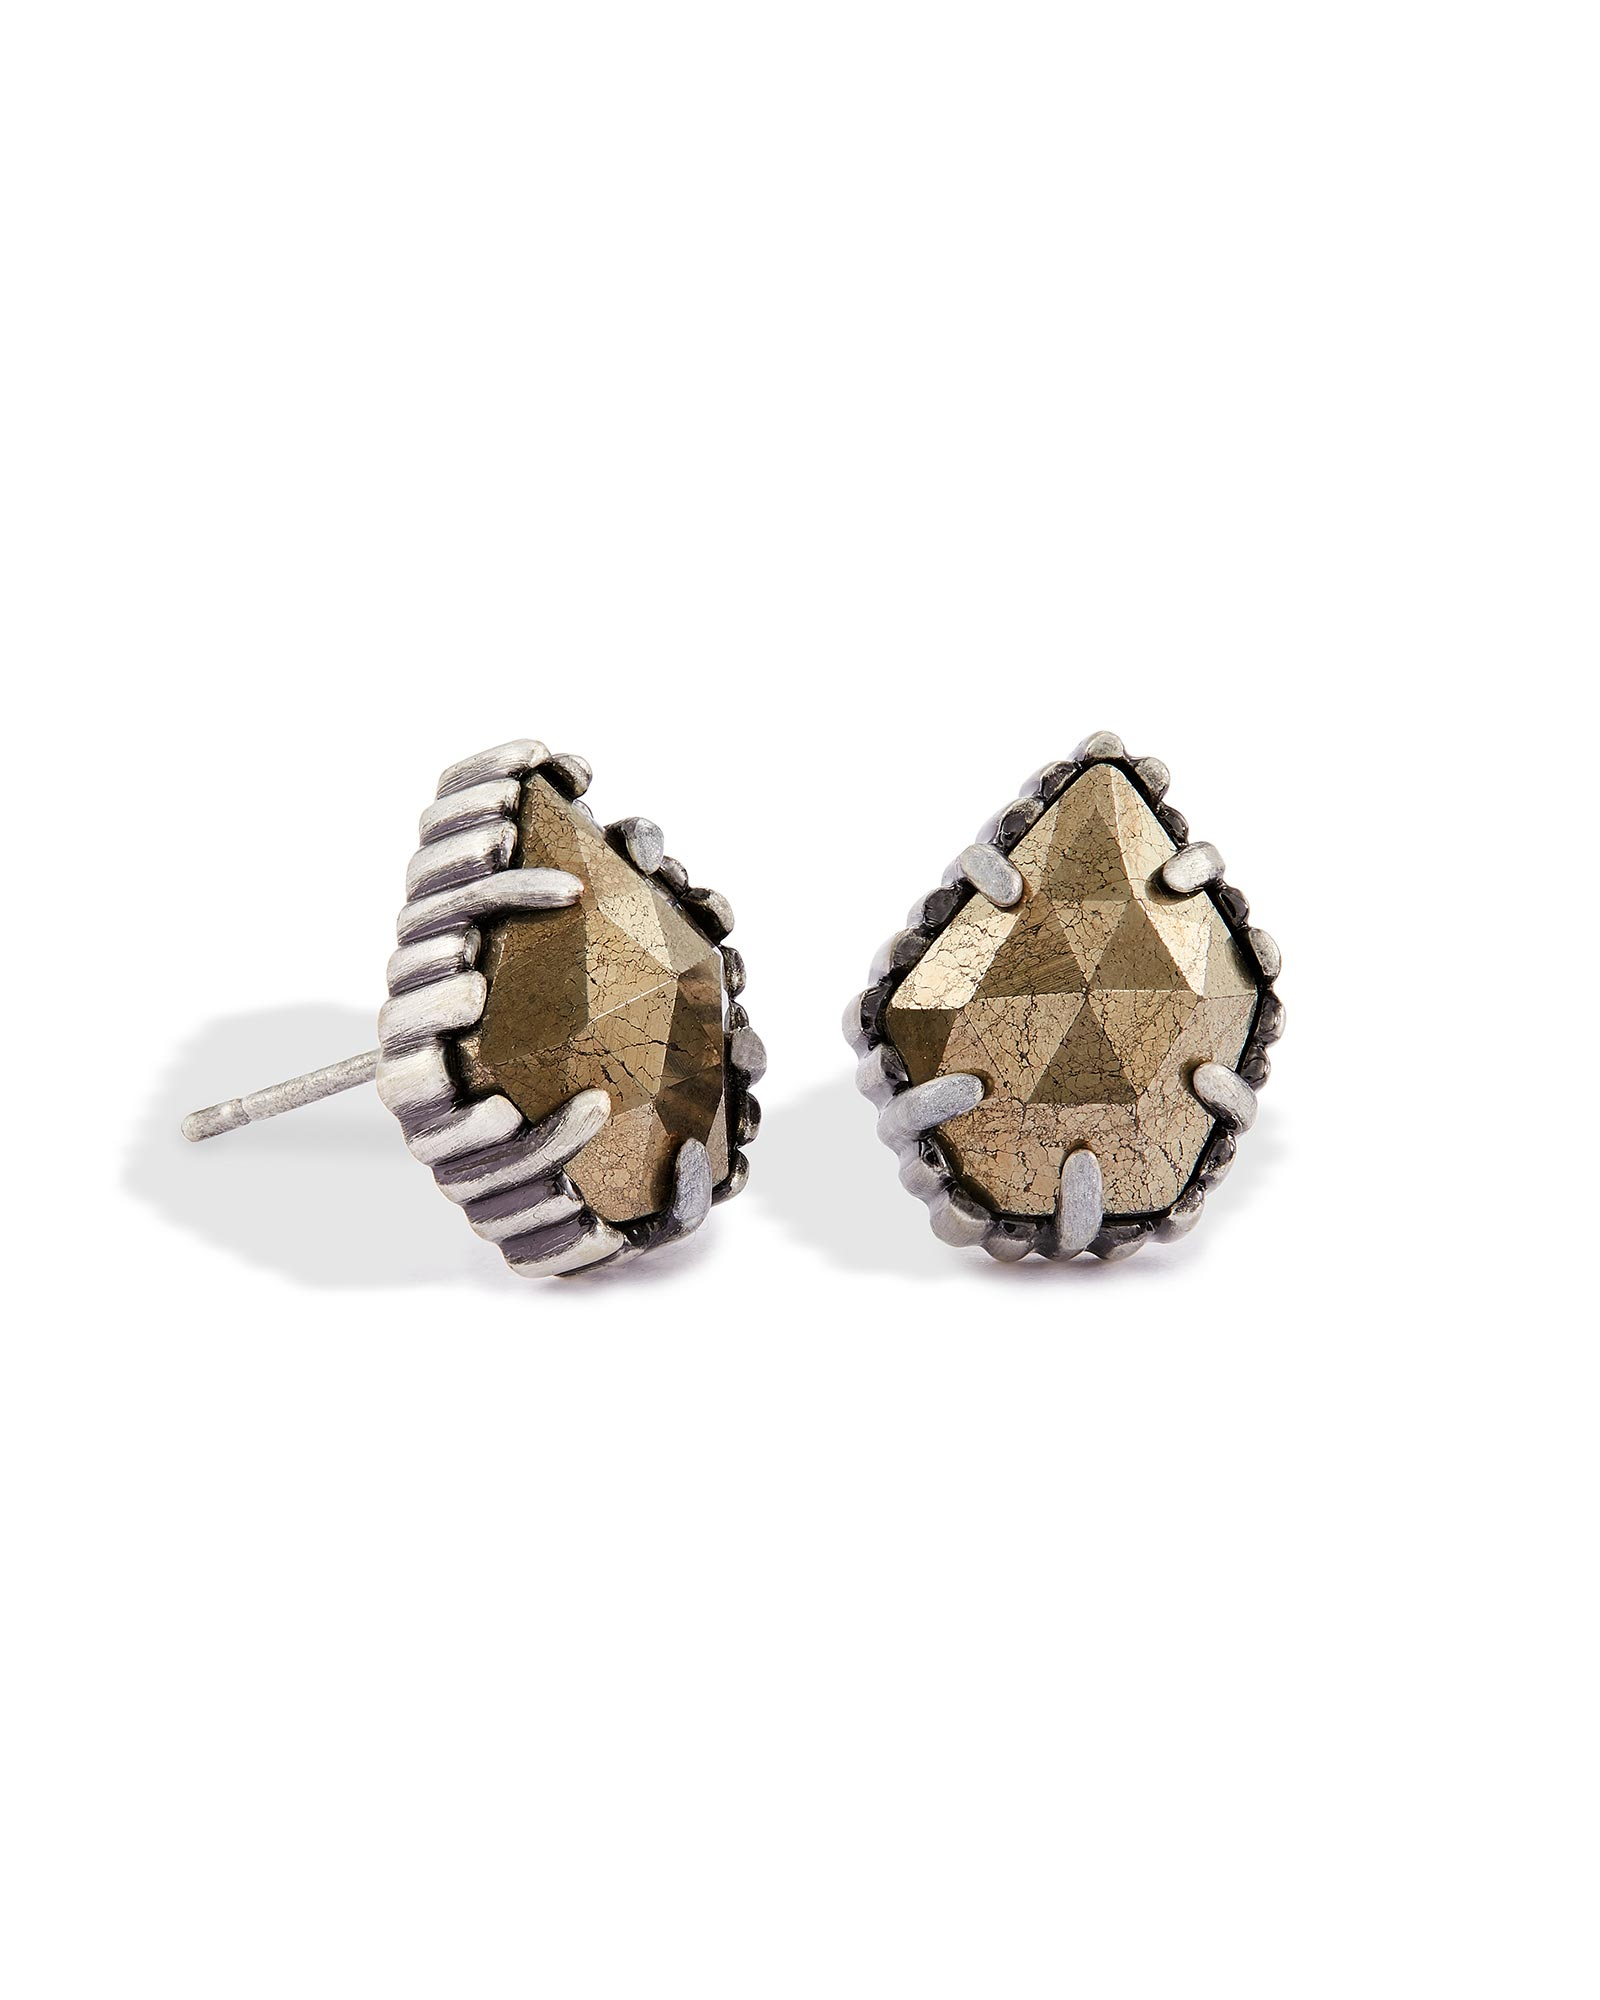 Tessa Stud Earrings in Pyrite